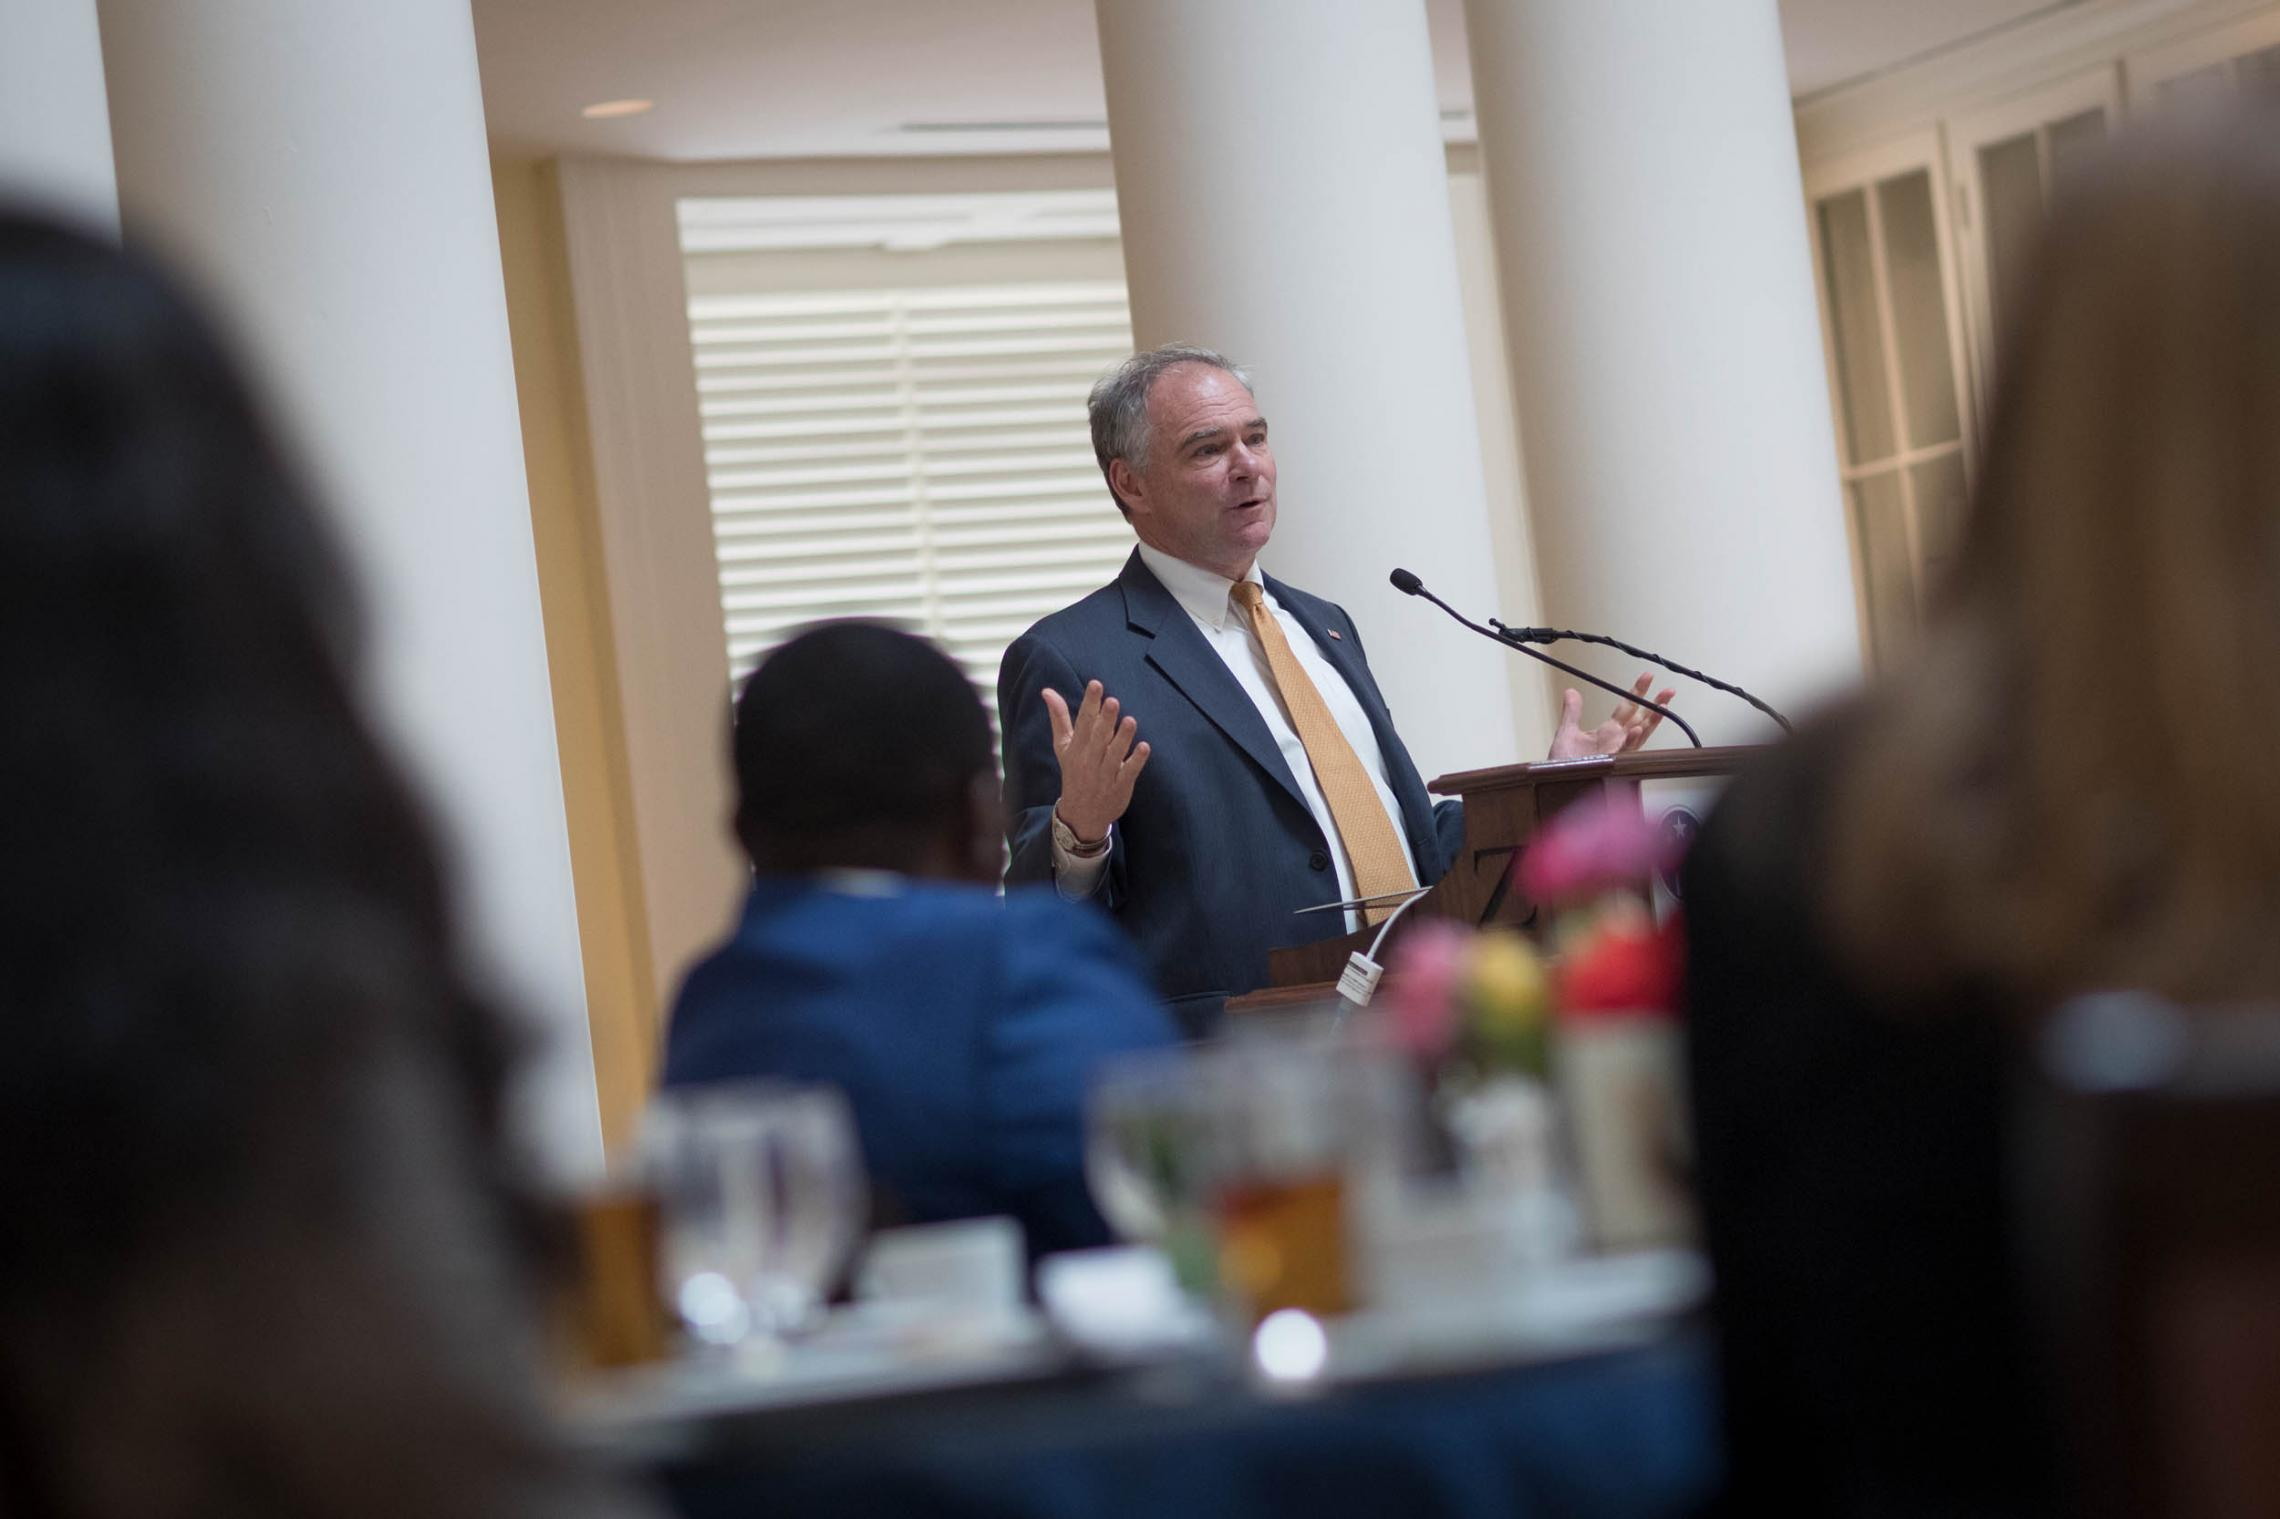 U.S. Sen. Tim Kaine congratulated this year's Mandela Washington Fellows and encouraged them to become politically involved in their communities. (Photo by Sanjay Suchak, University Communications)